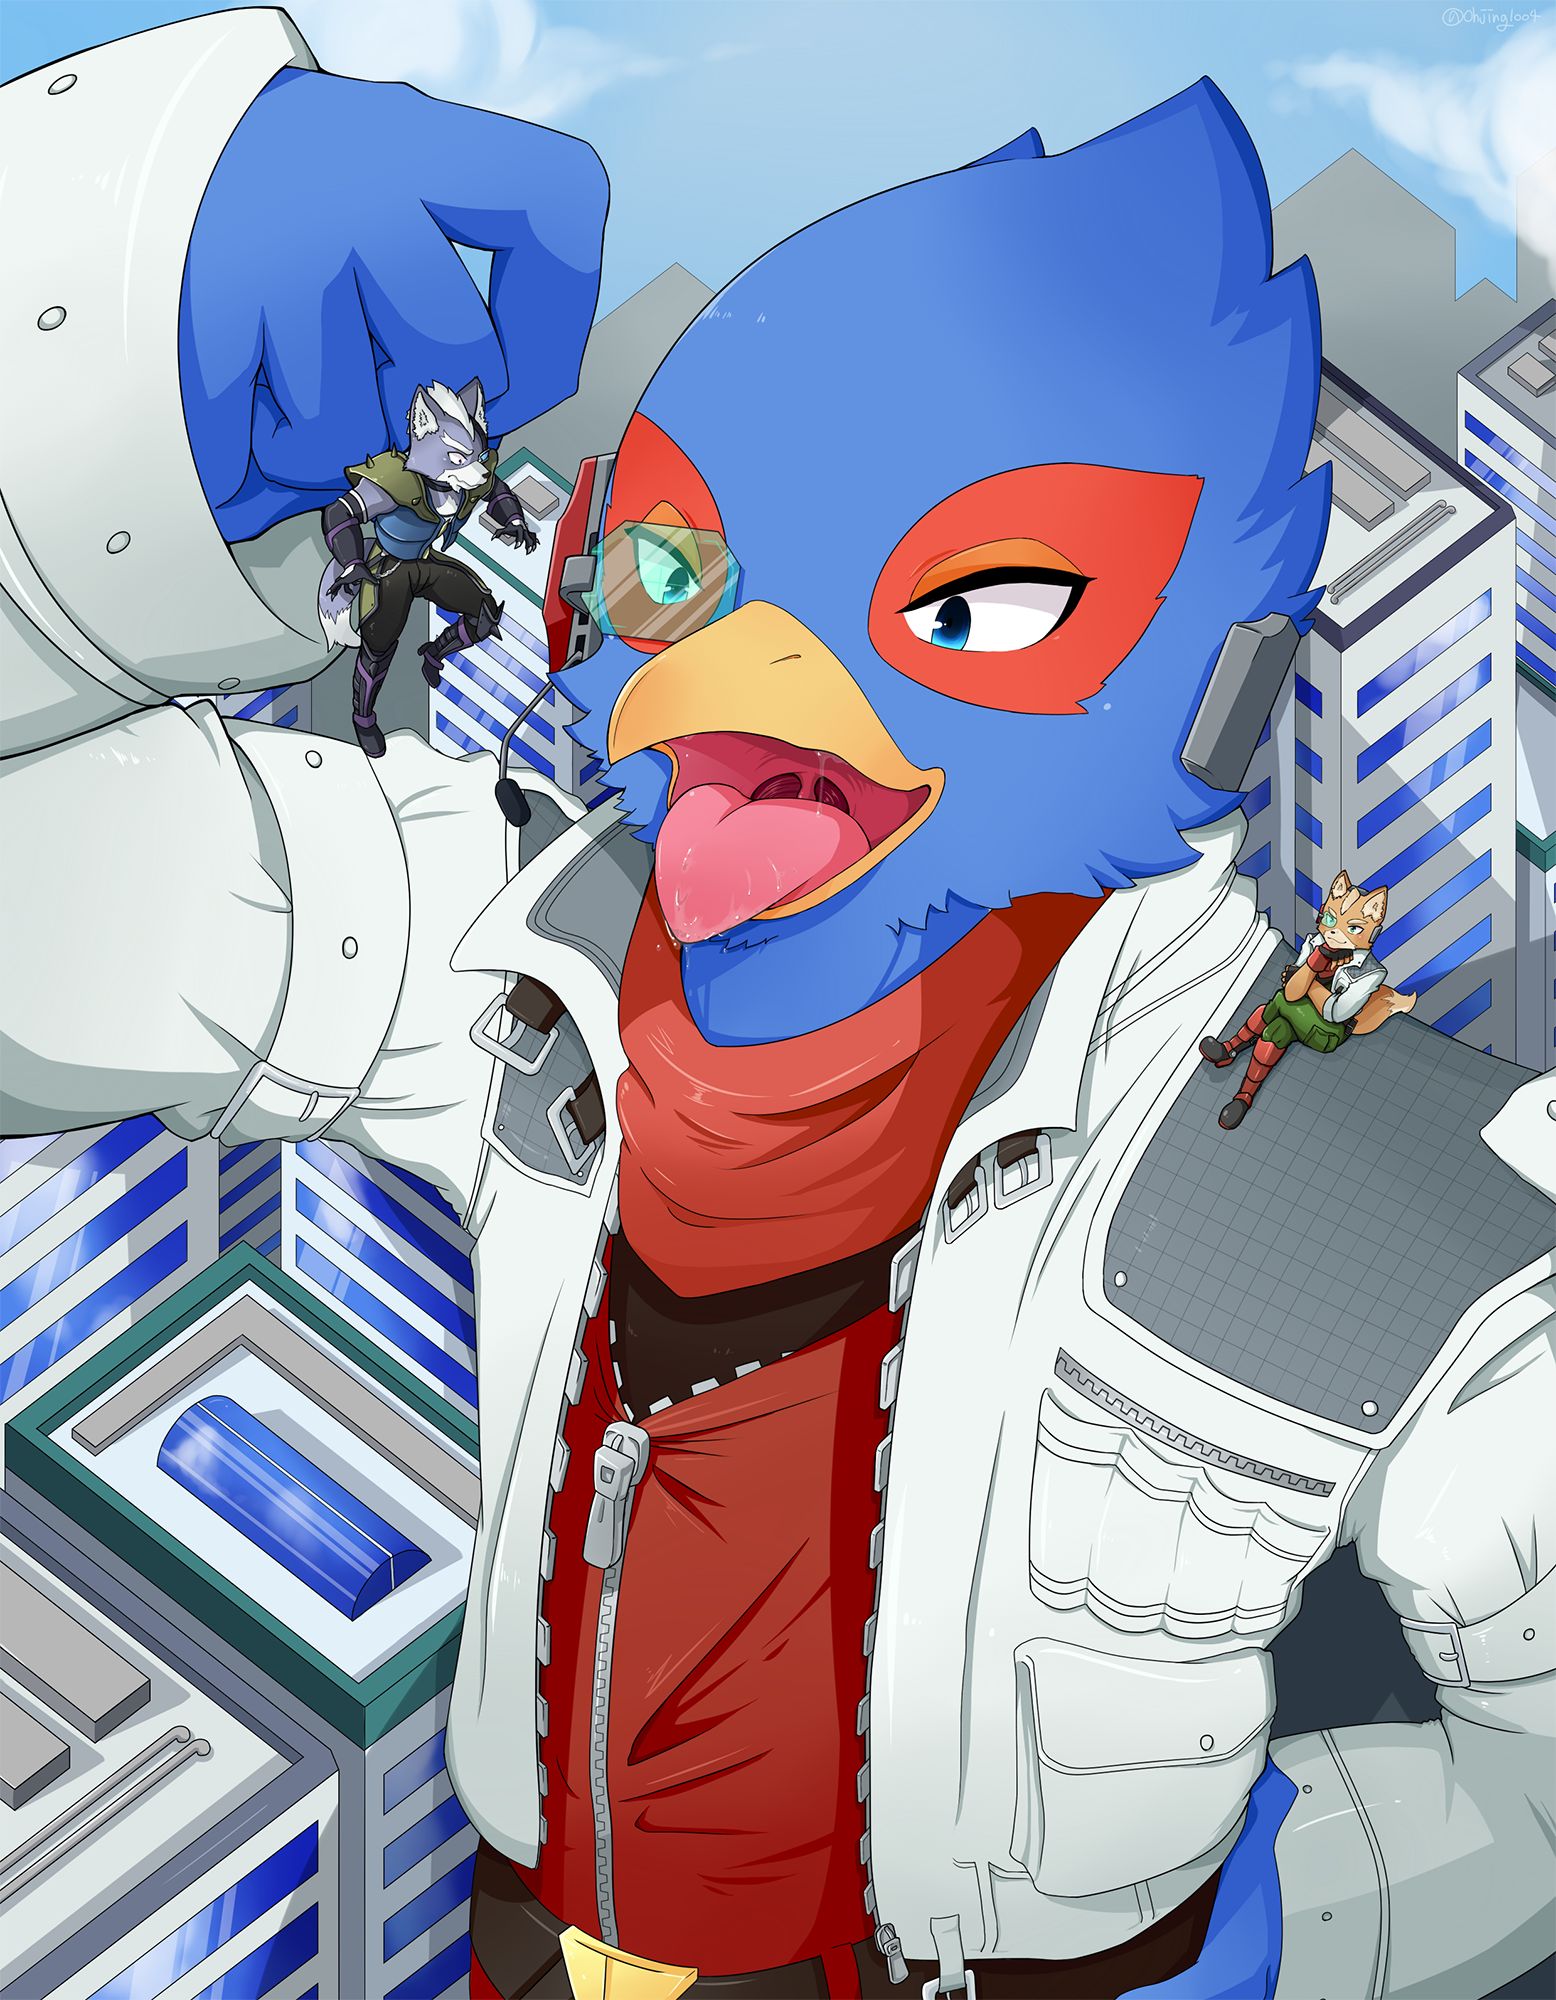 e926 anthro avian bird building canine clothed clothing falco_lombardi fox fox_mccloud grabbing group hi_res macro male mammal nintendo ohjing1004 oral_vore saliva soft_vore star_fox tongue tongue_out video_games vore wolf wolf_o'donnell